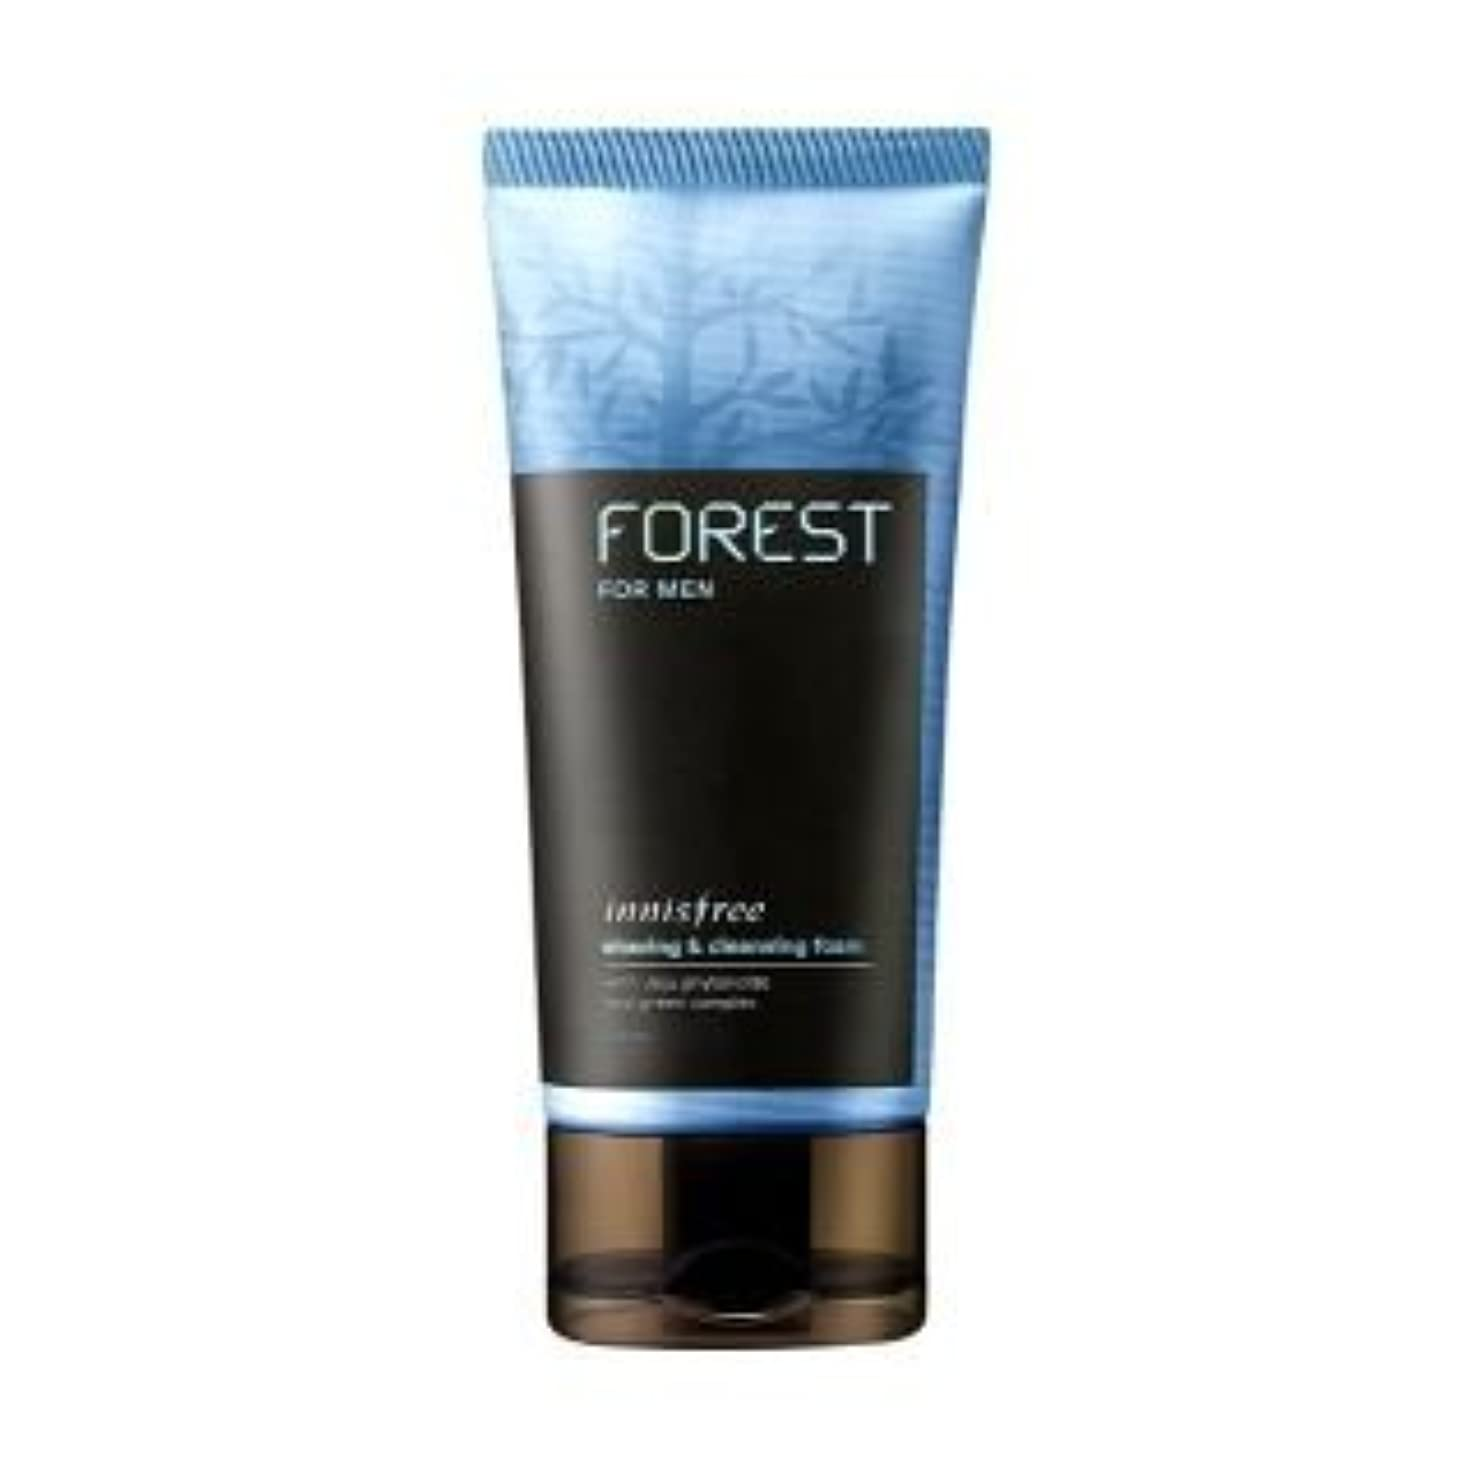 [Innisfree] Forest For Men Shaving & Cleansing Foam 150ml by Innisfree [並行輸入品]